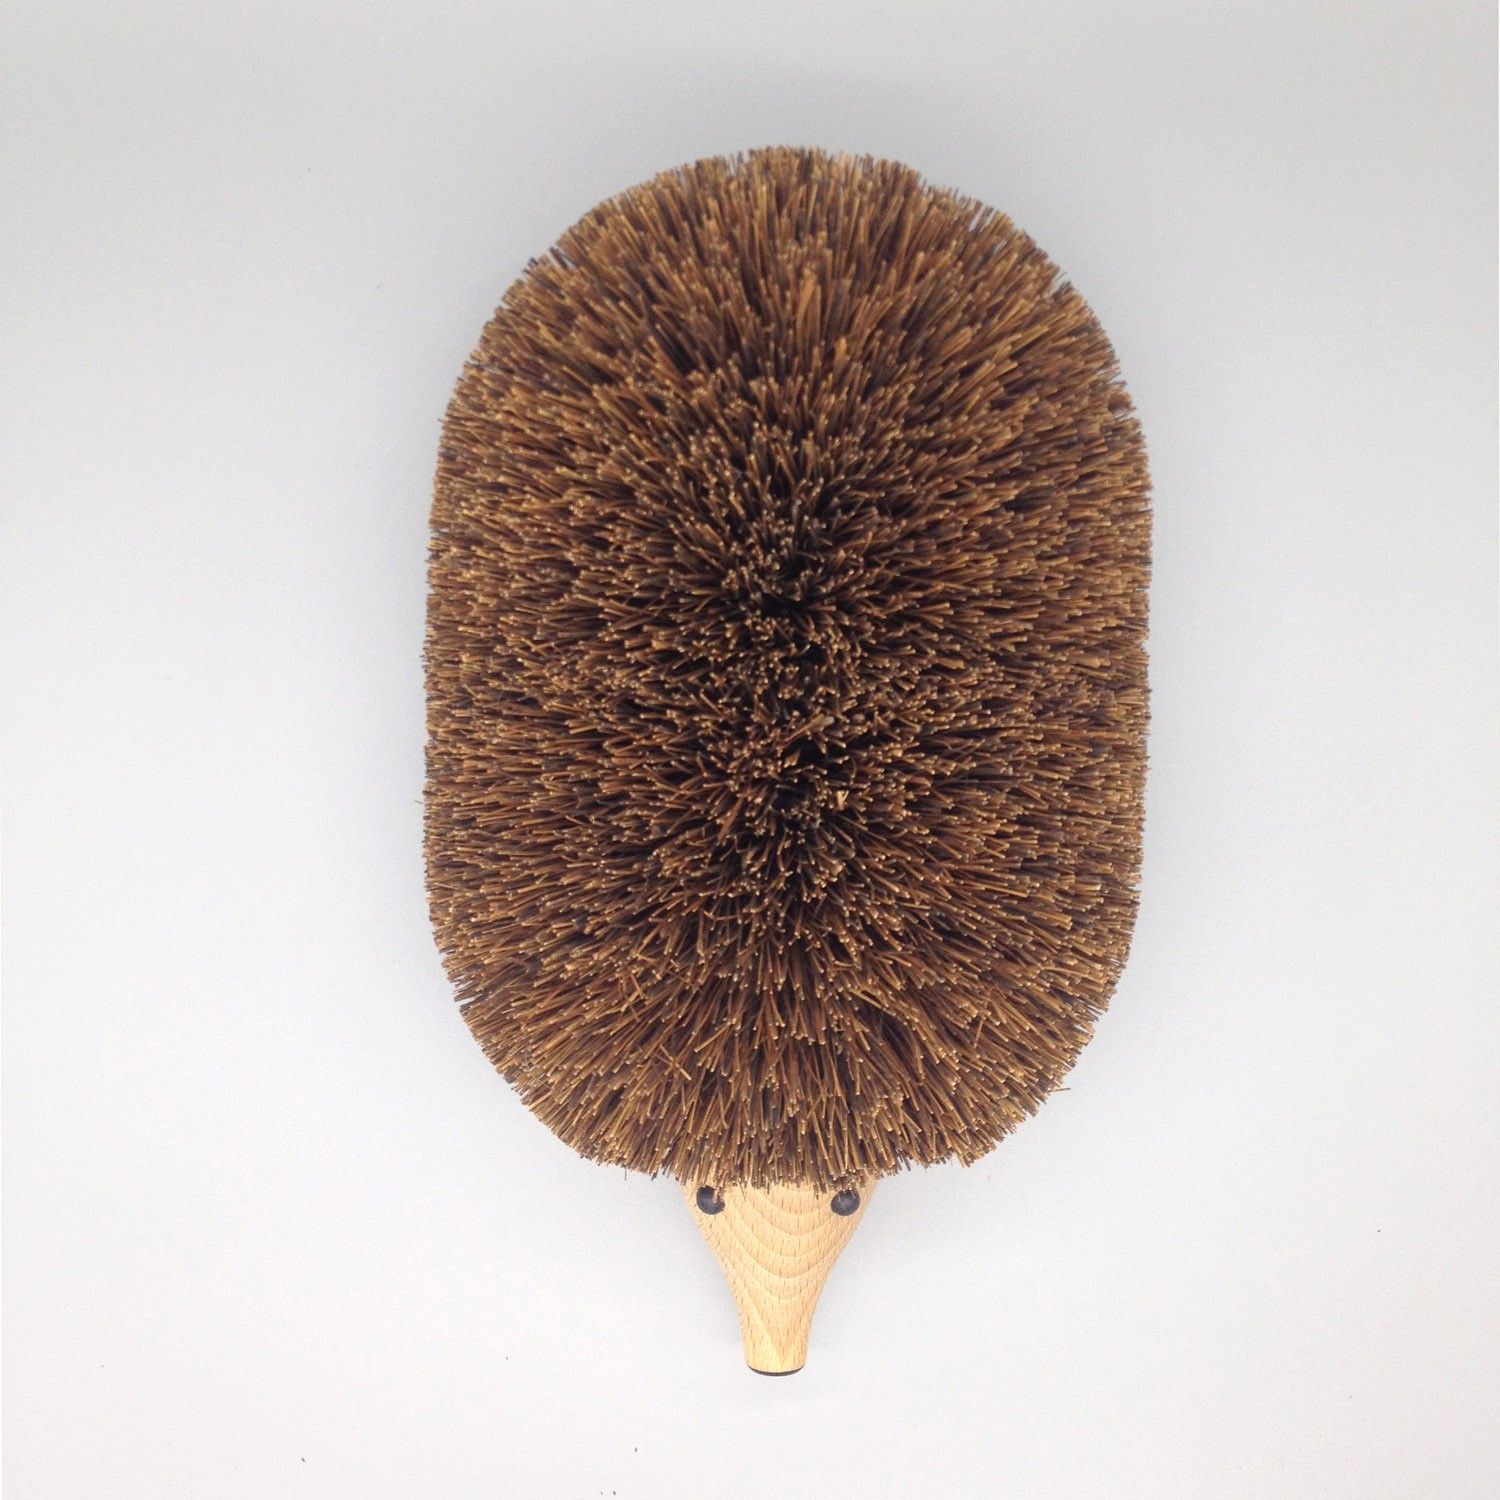 Porcupine Shoe Brush Hairstyle Inspirations 2018